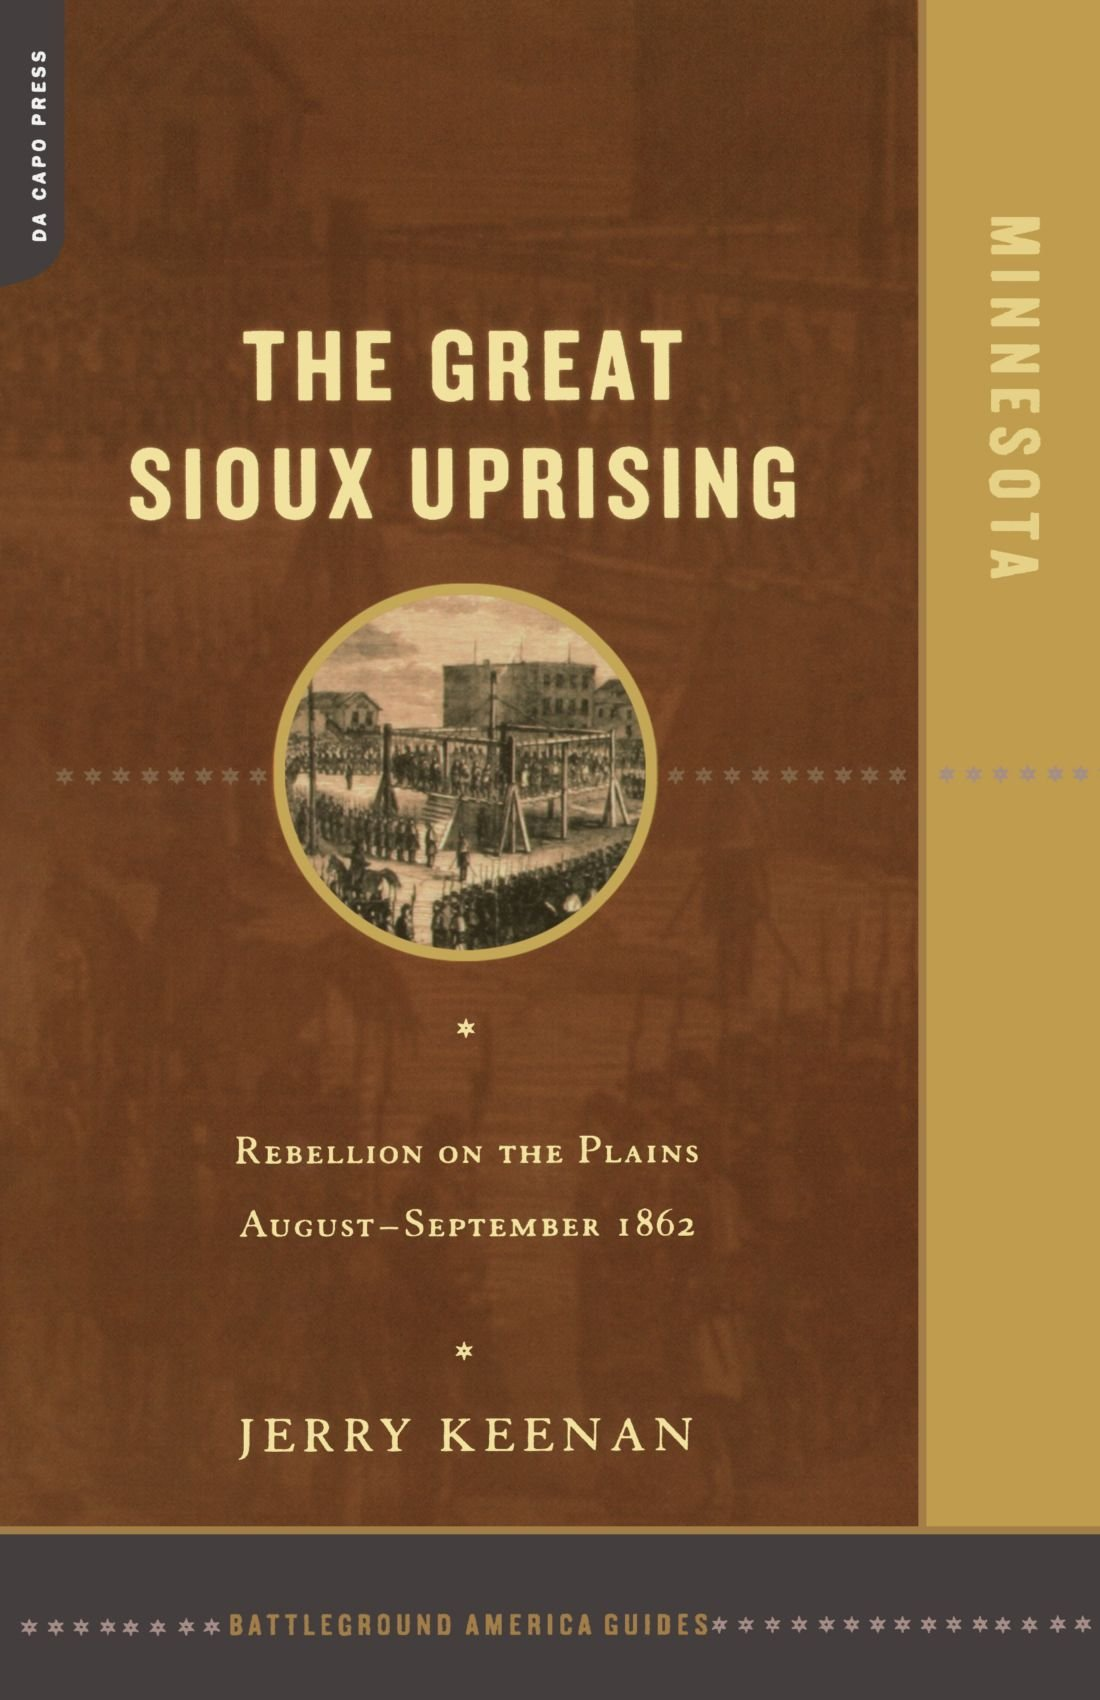 Download The Great Sioux Uprising: Rebellion on the Plains August-September 1862 ebook